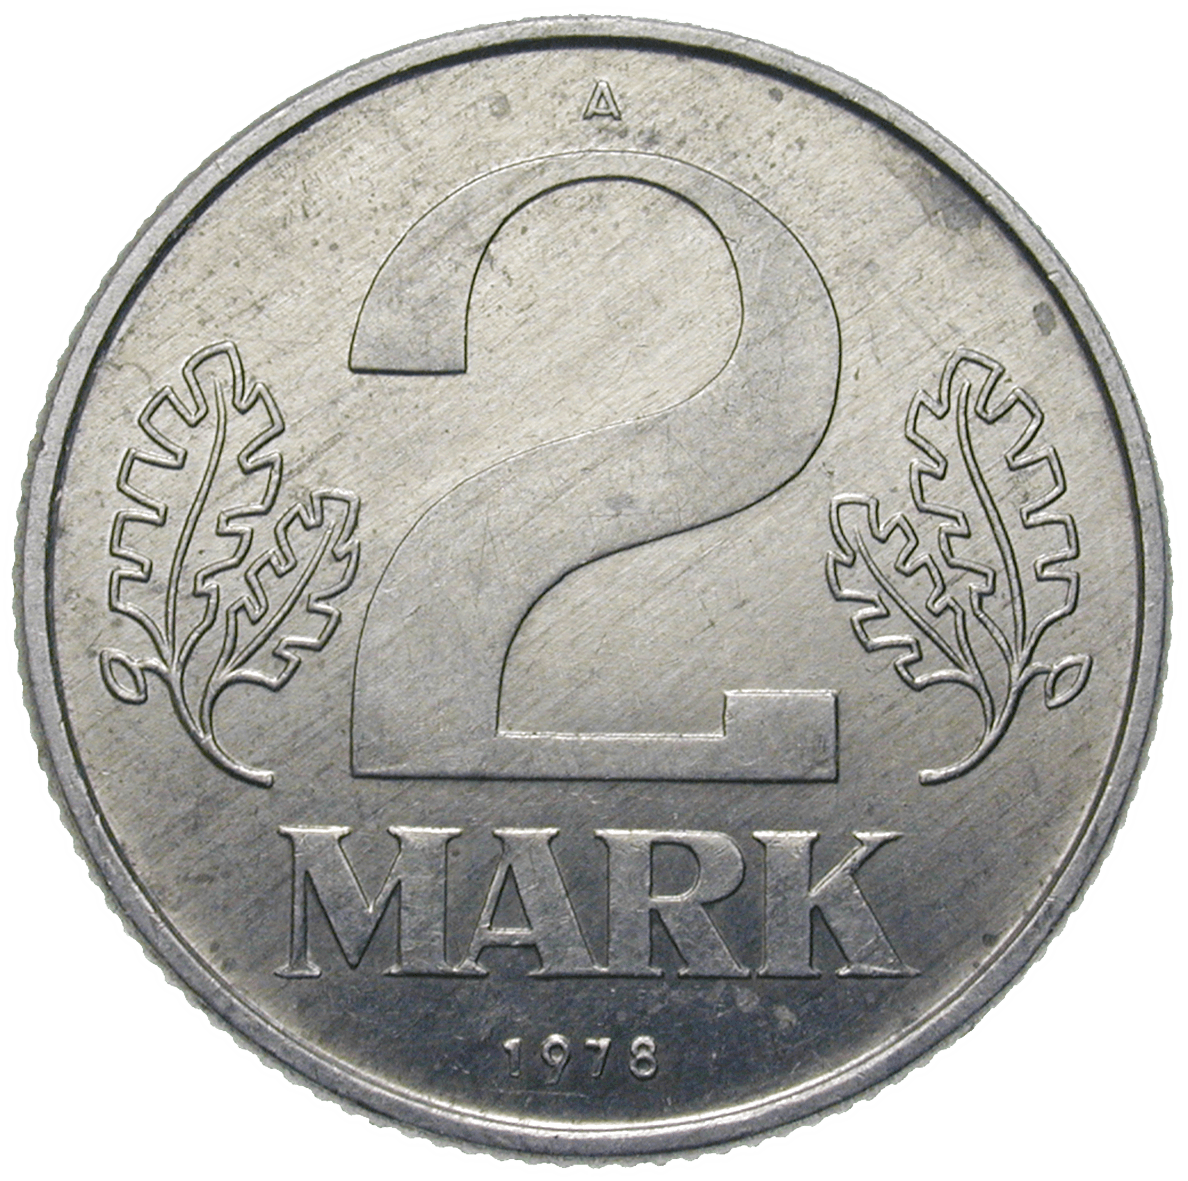 German Democratic Republic, 2 Mark 1978, Berlin (reverse)